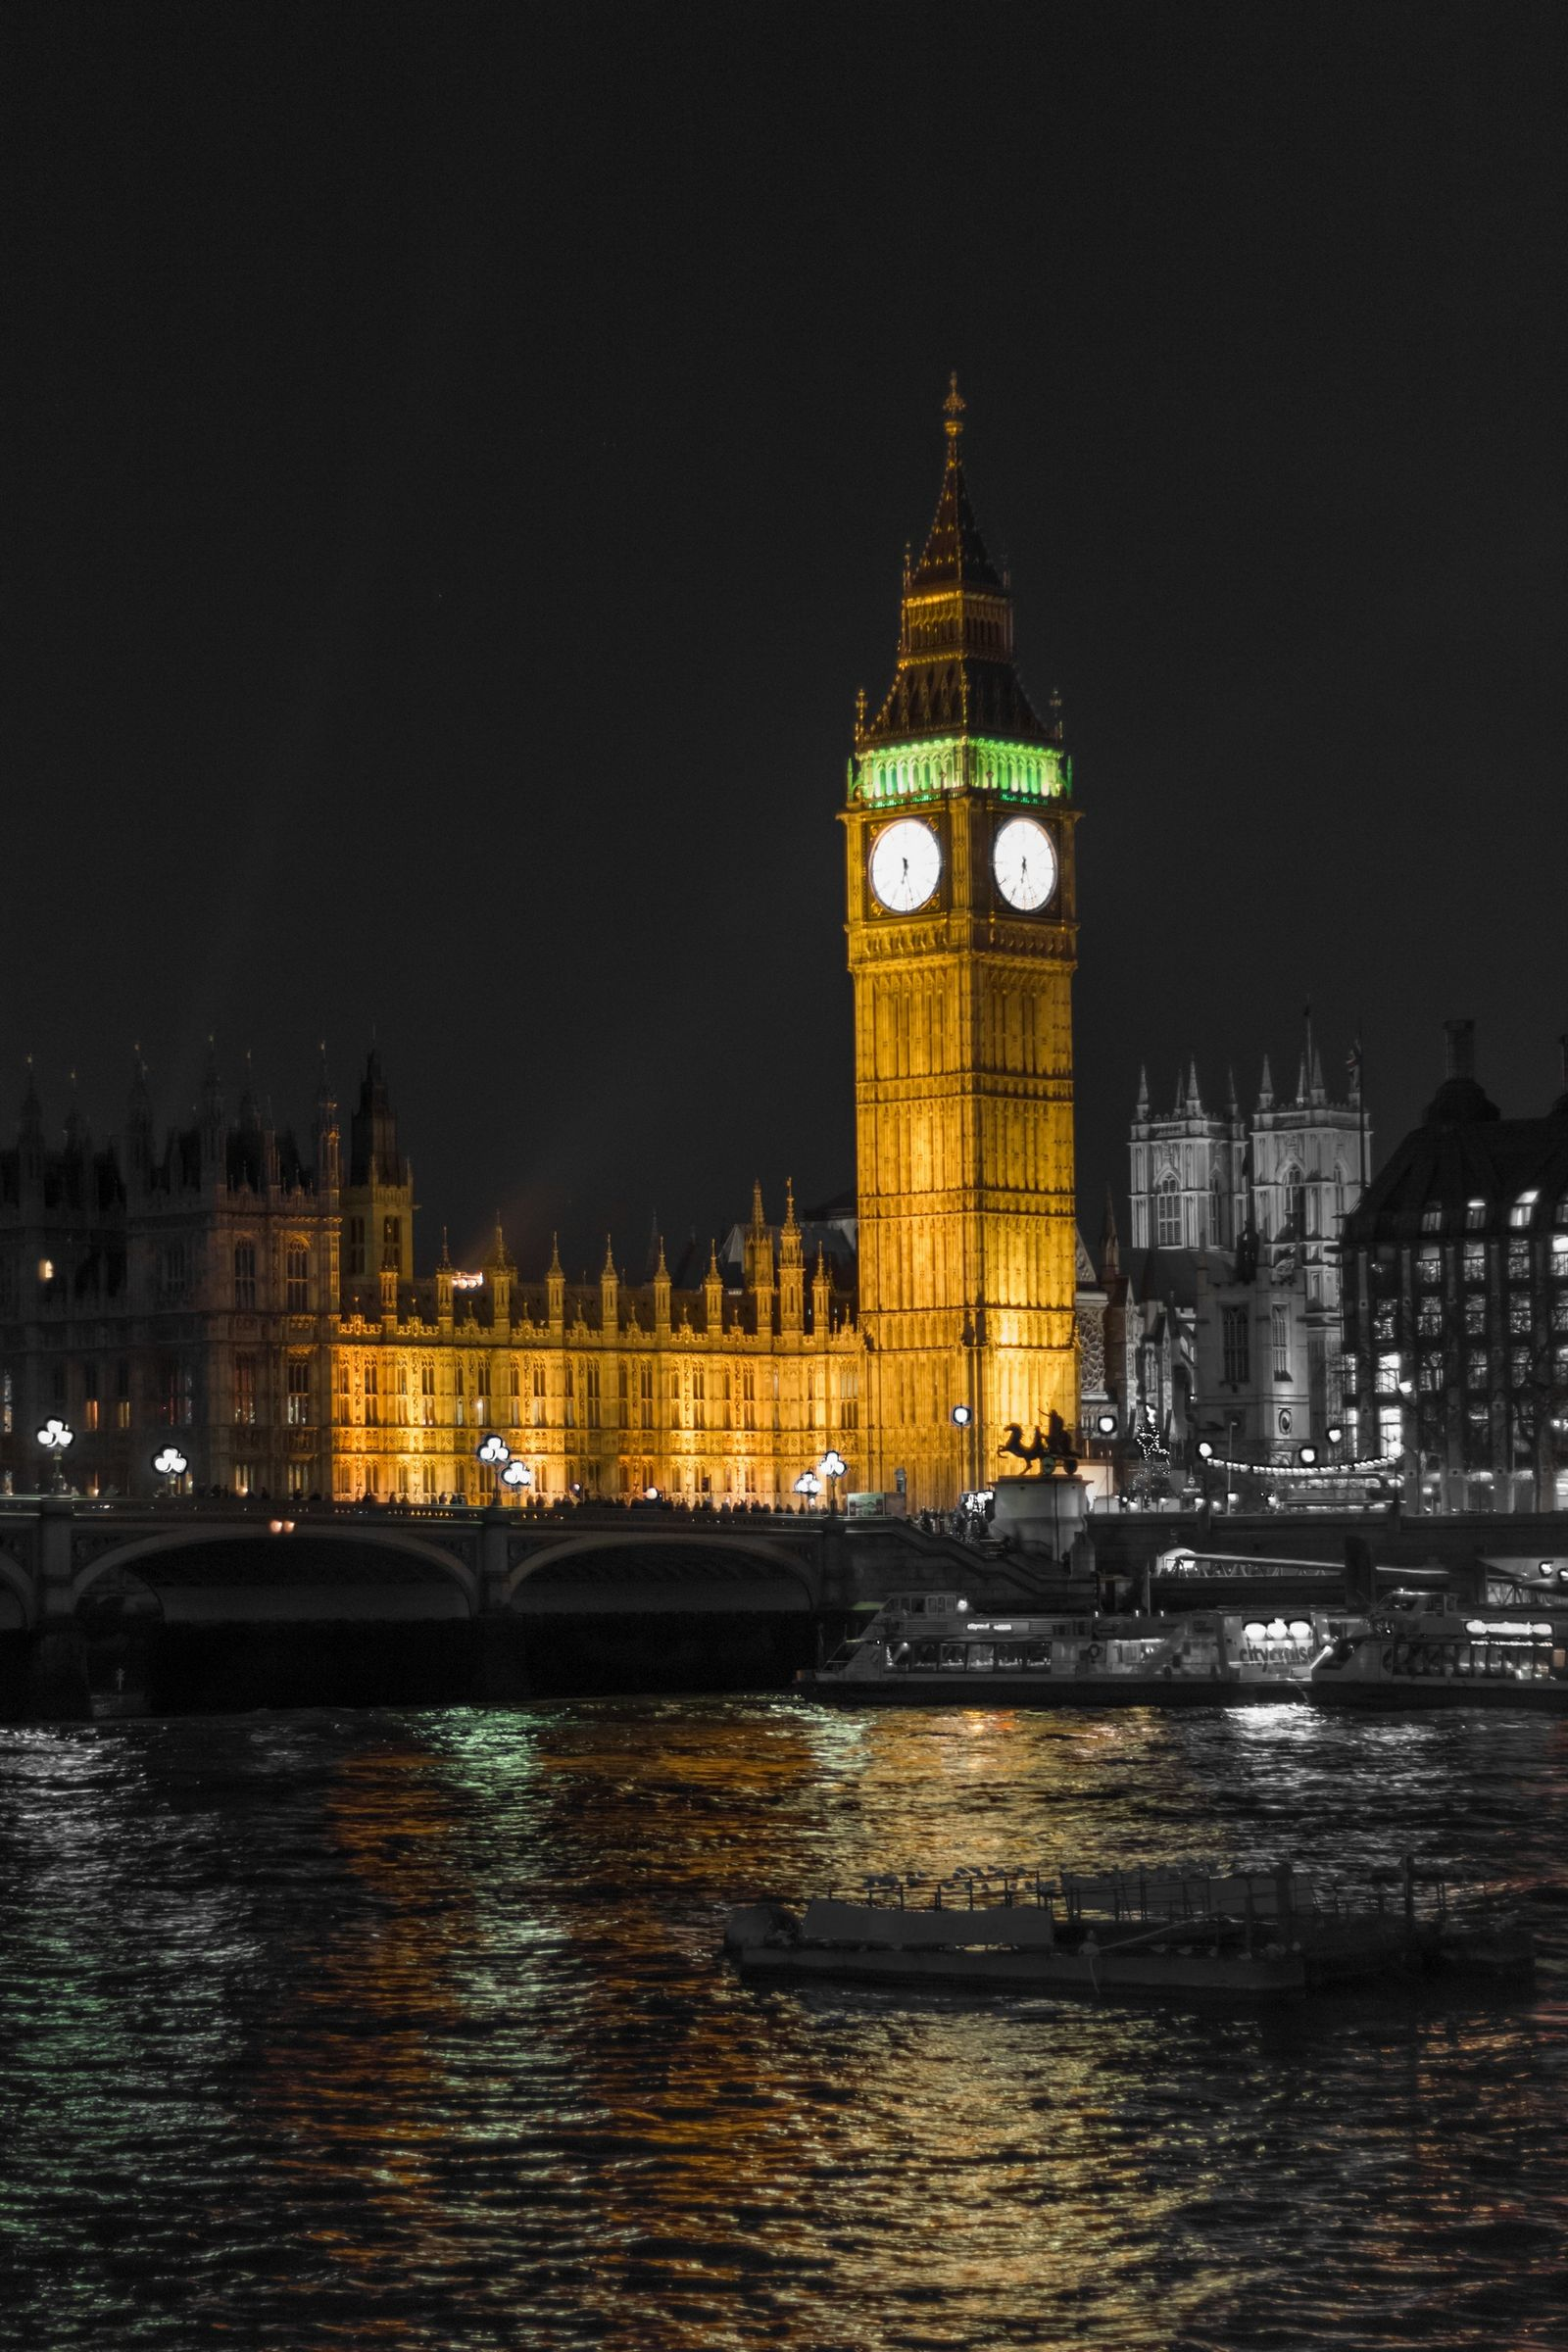 Las luces del Big Ben